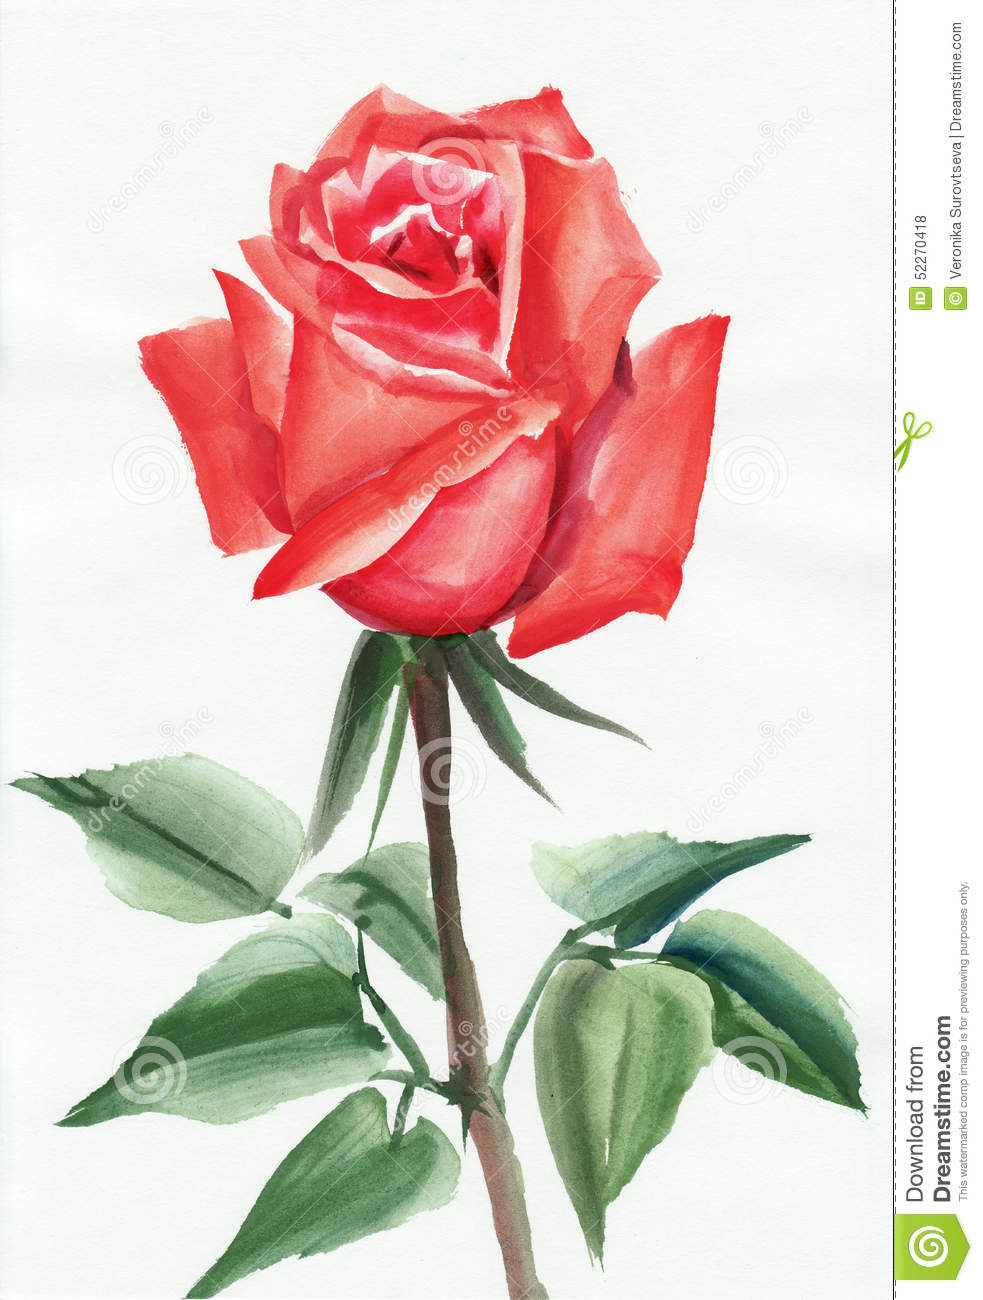 Rosa pintura images galleries with a for Colore de pintura